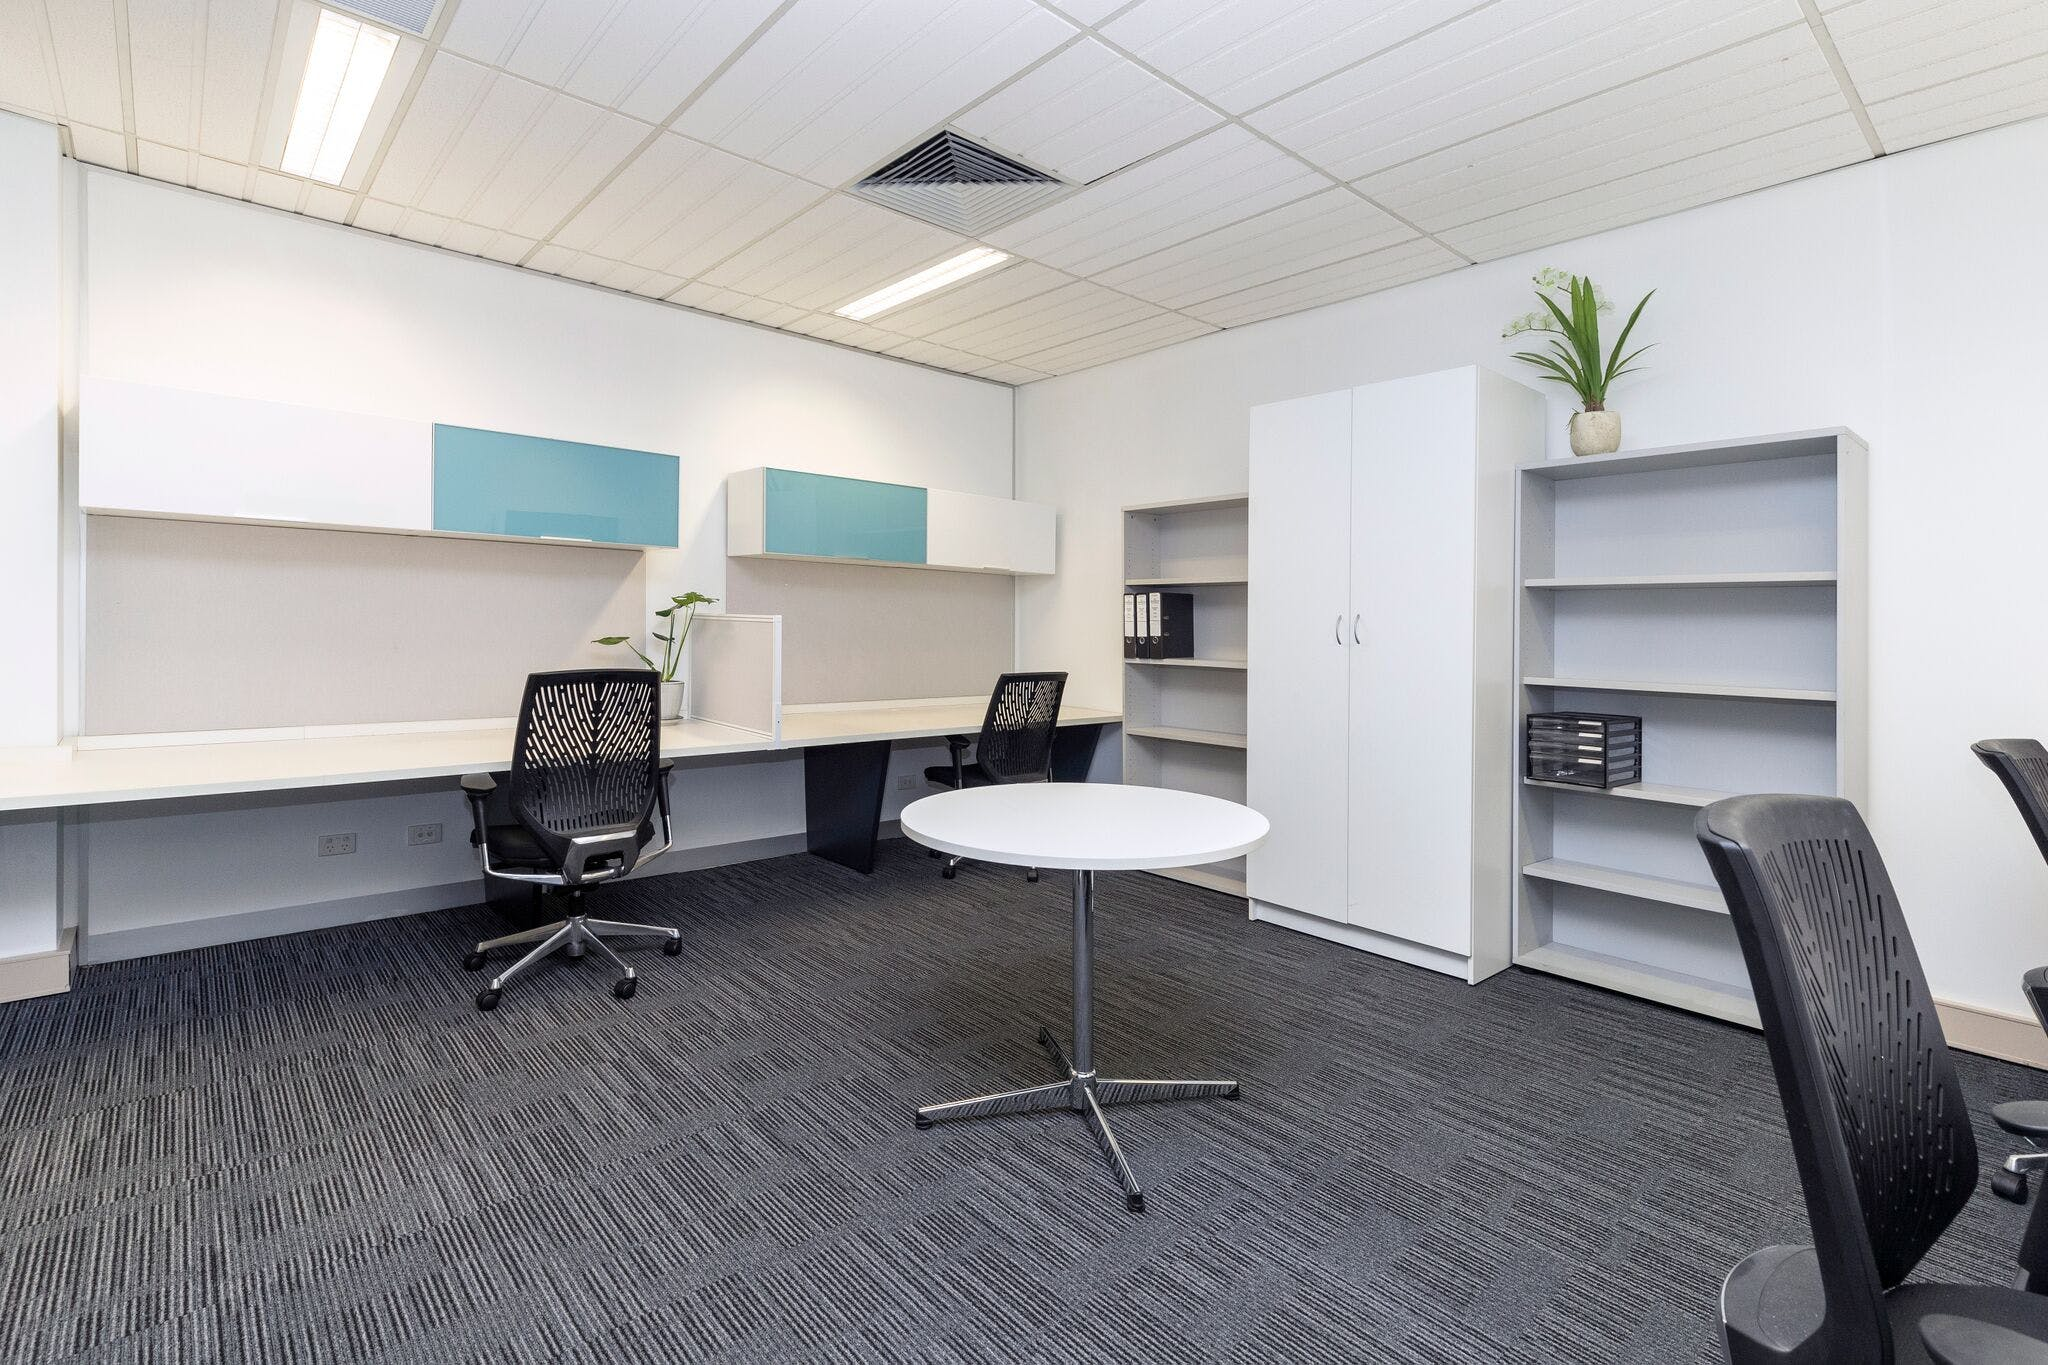 6 Person, private office at Select OwnersCorp Management, image 1